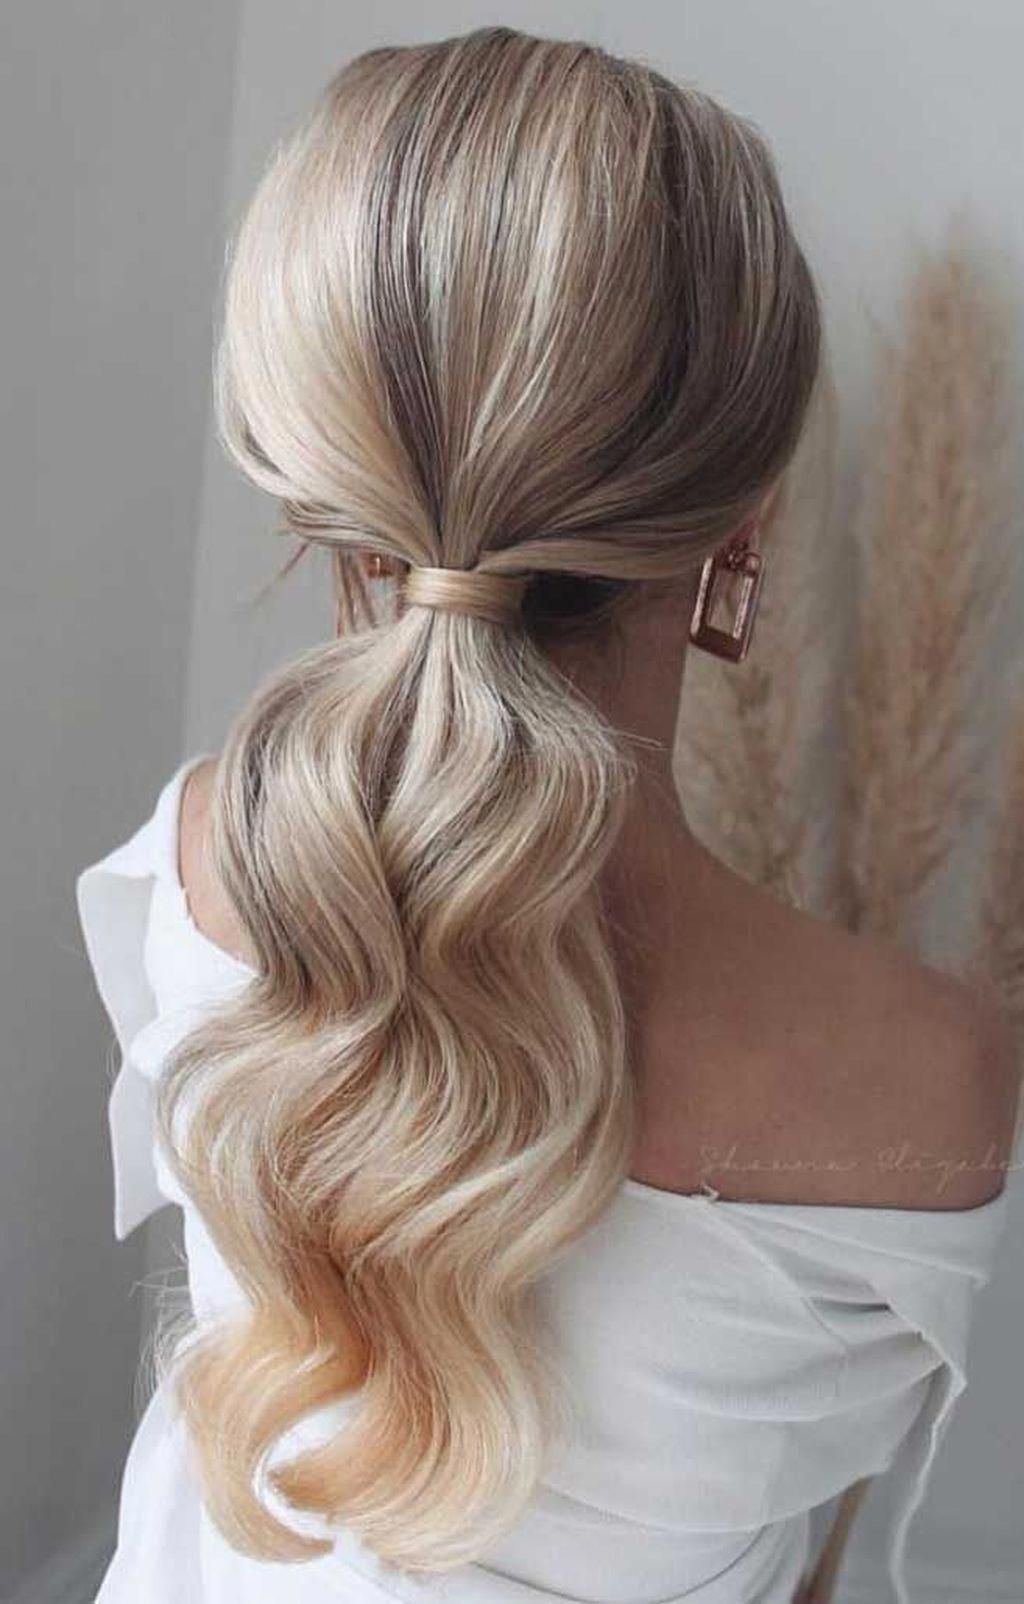 44 Classy Prom Hairstyles Ideas To Try Asap # ...